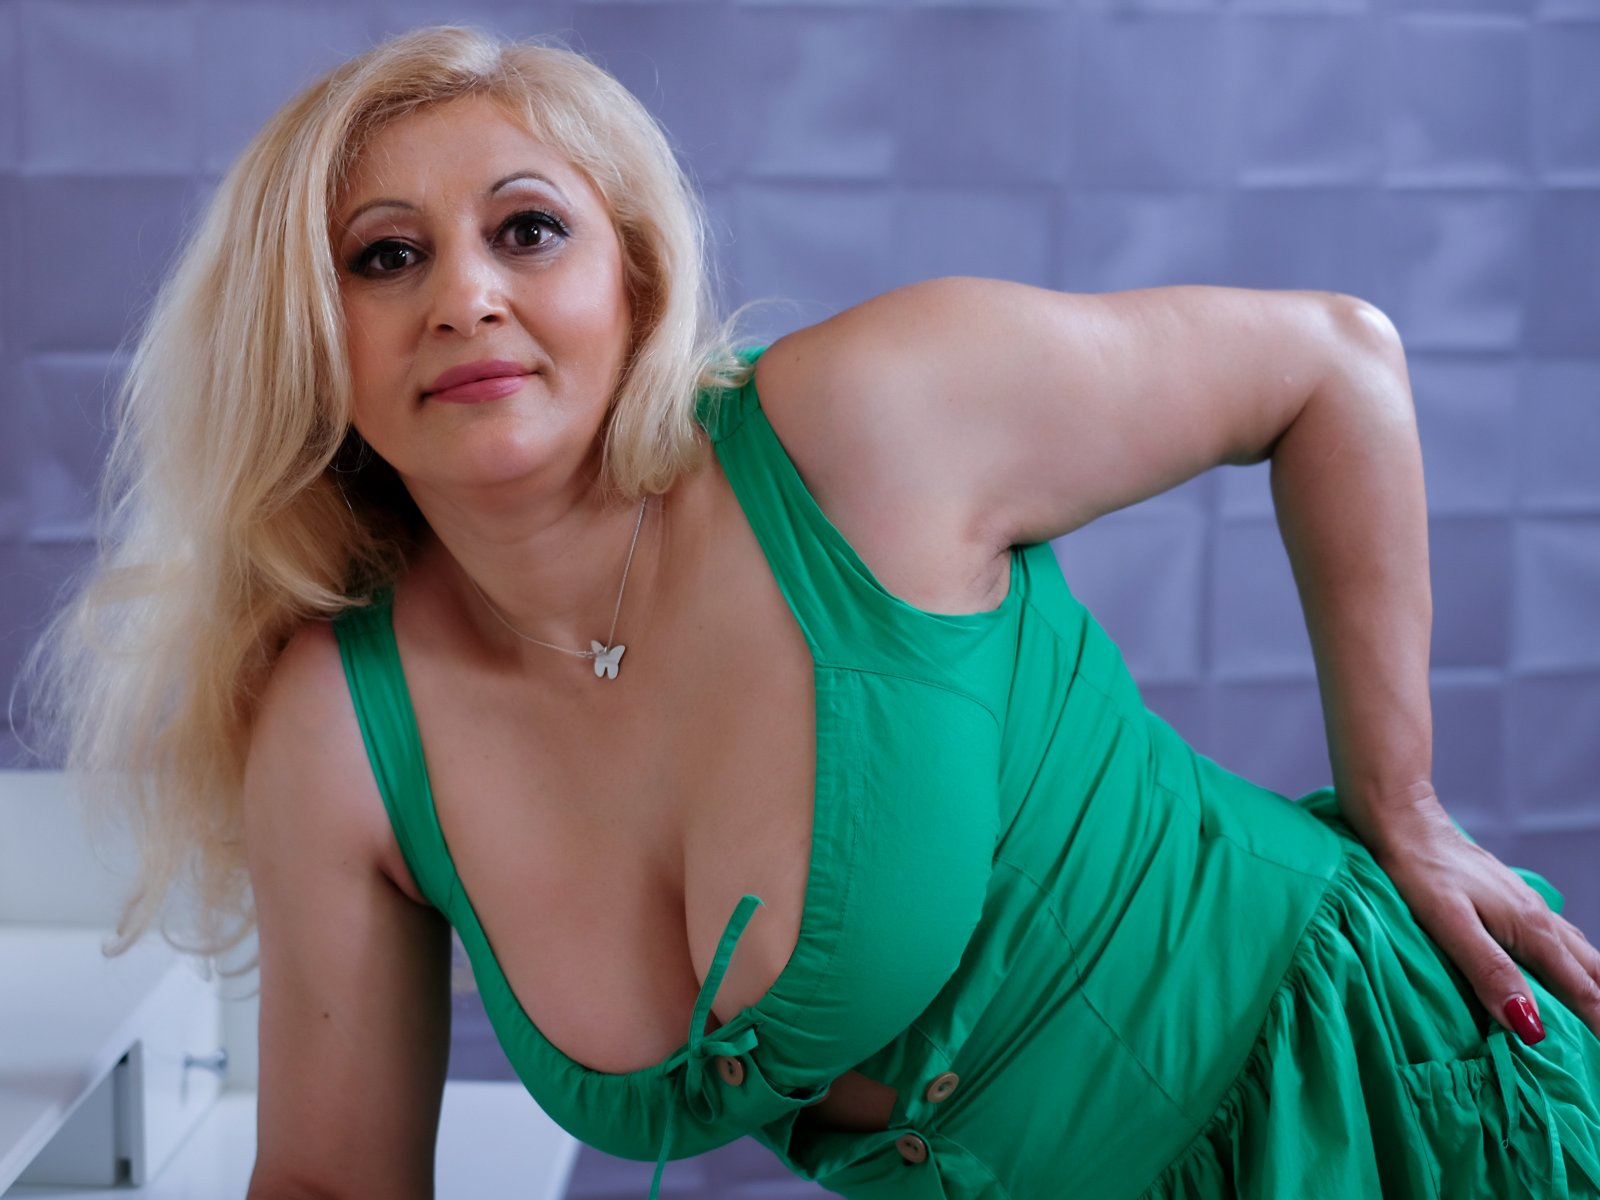 Most Reliable Mature Online Dating Site No Register